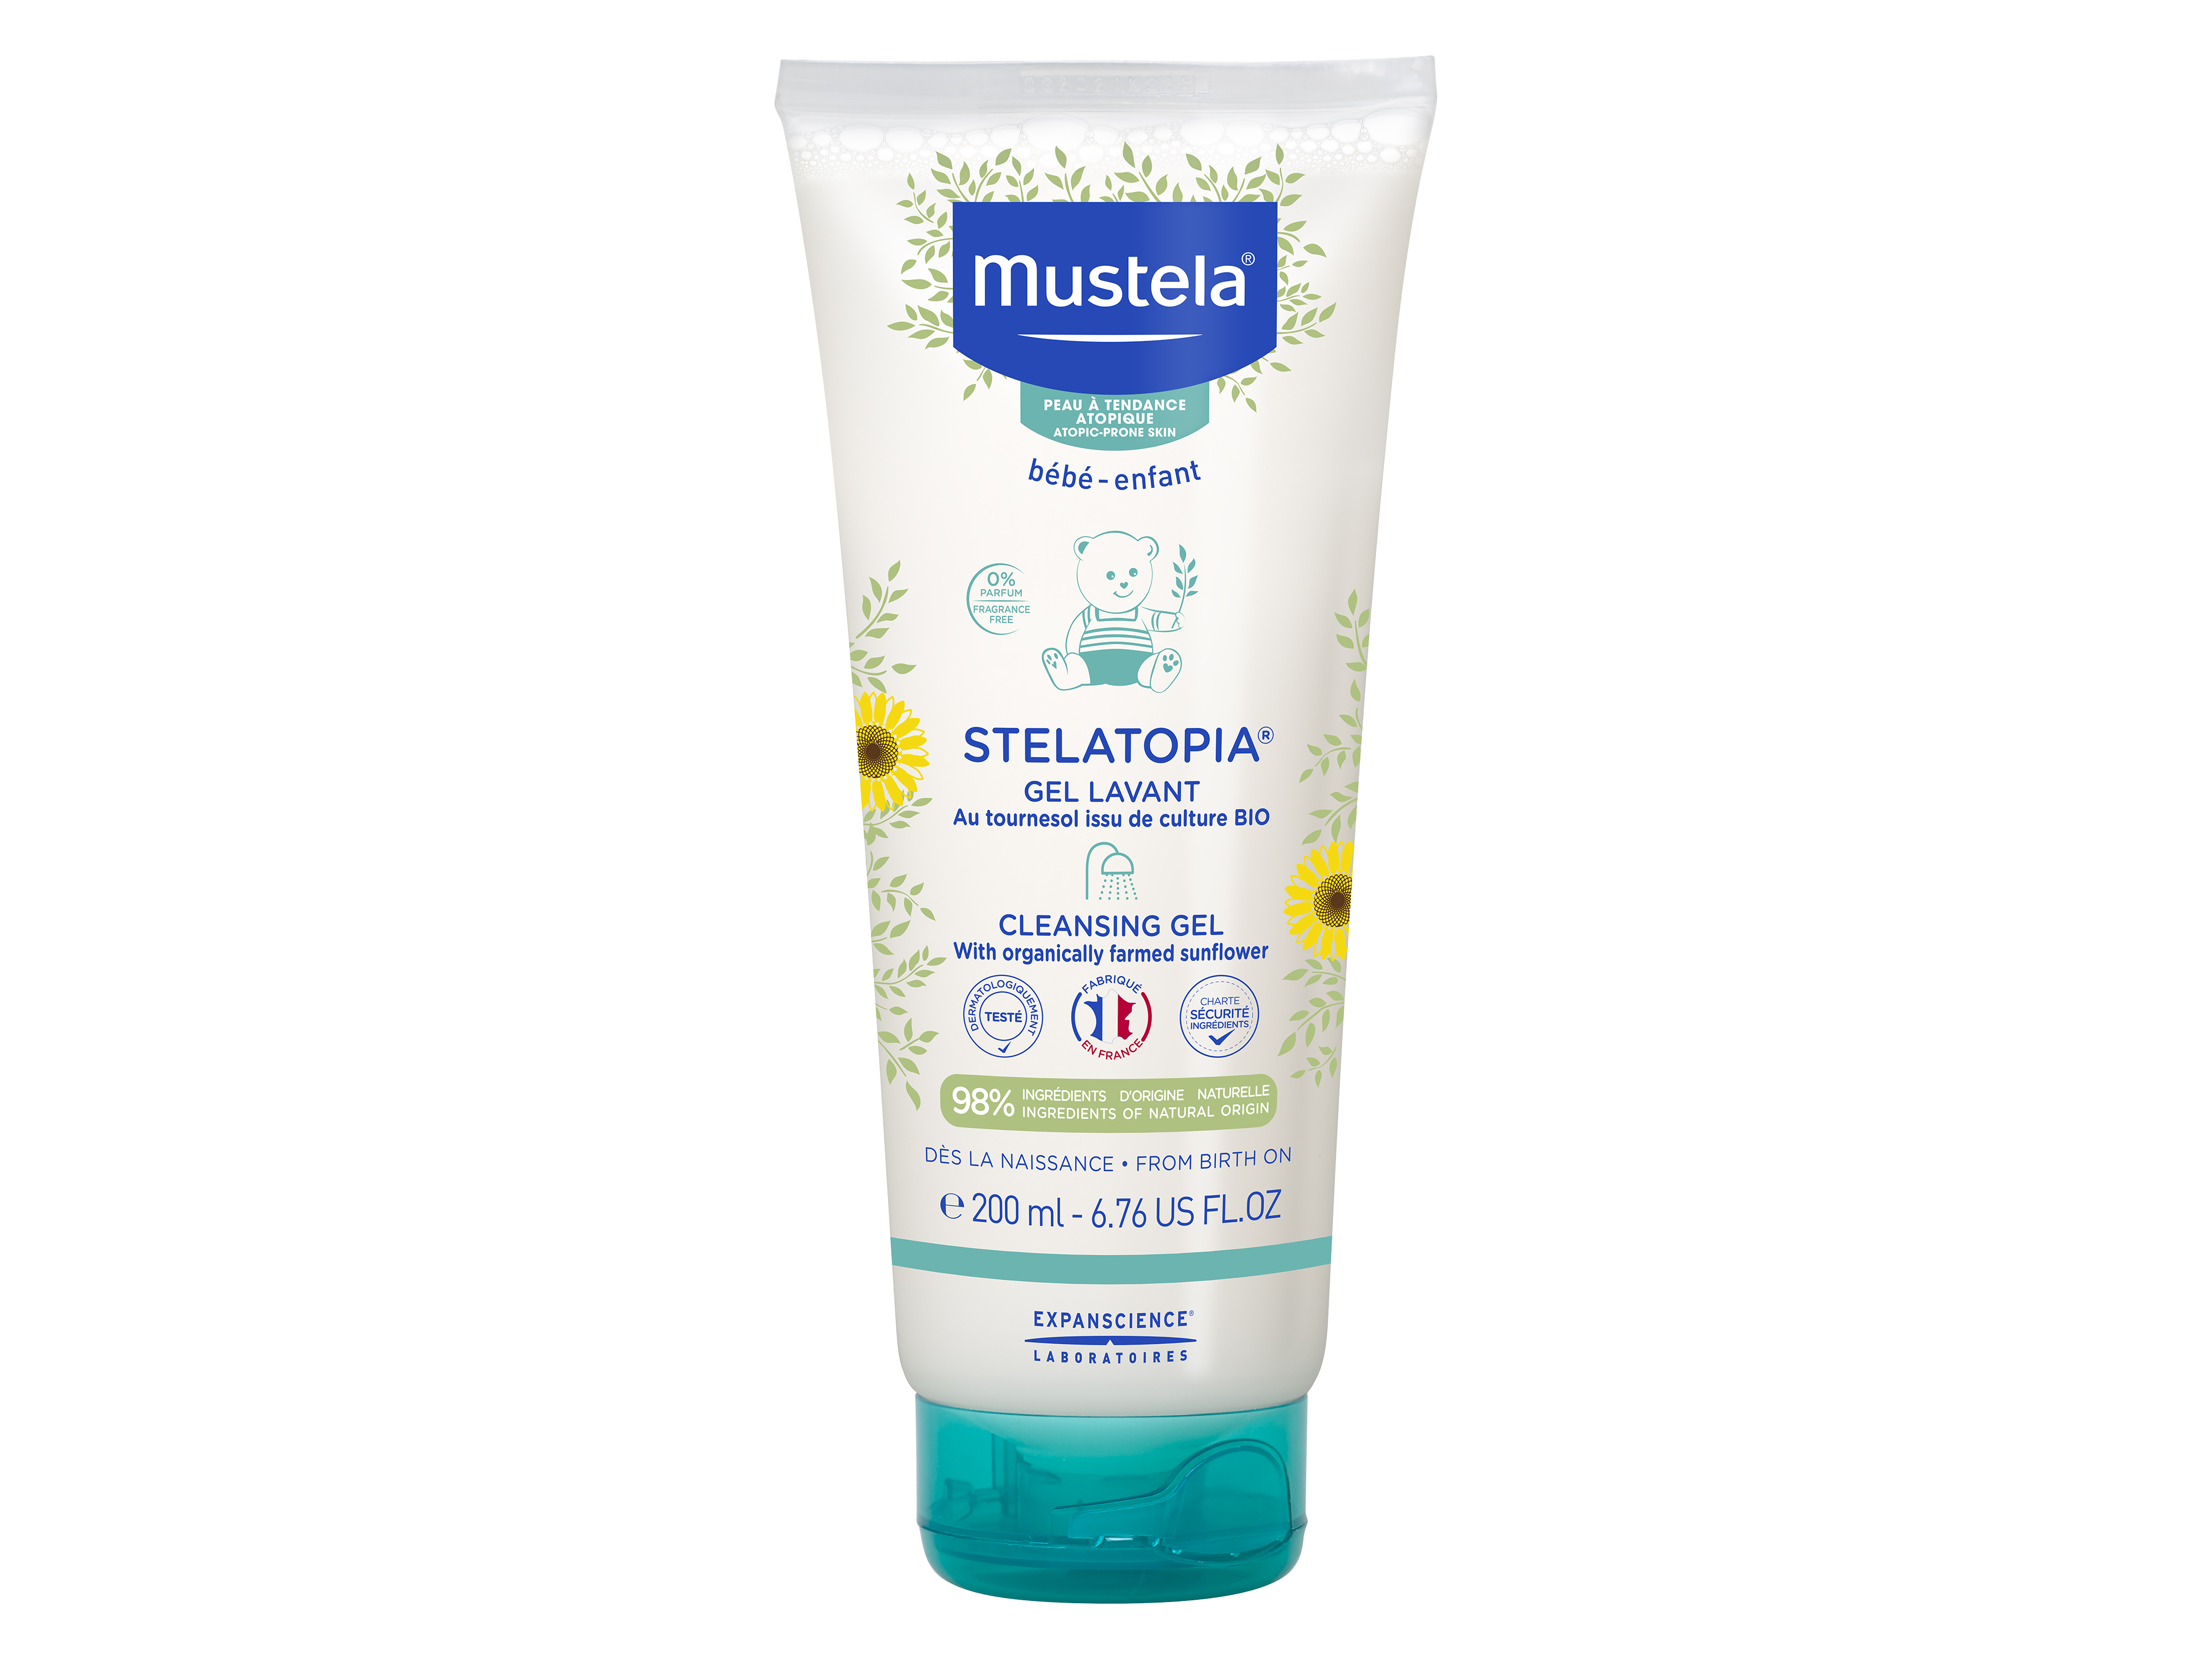 Mustela Stelatopia Cleansing Gel, 200 ml